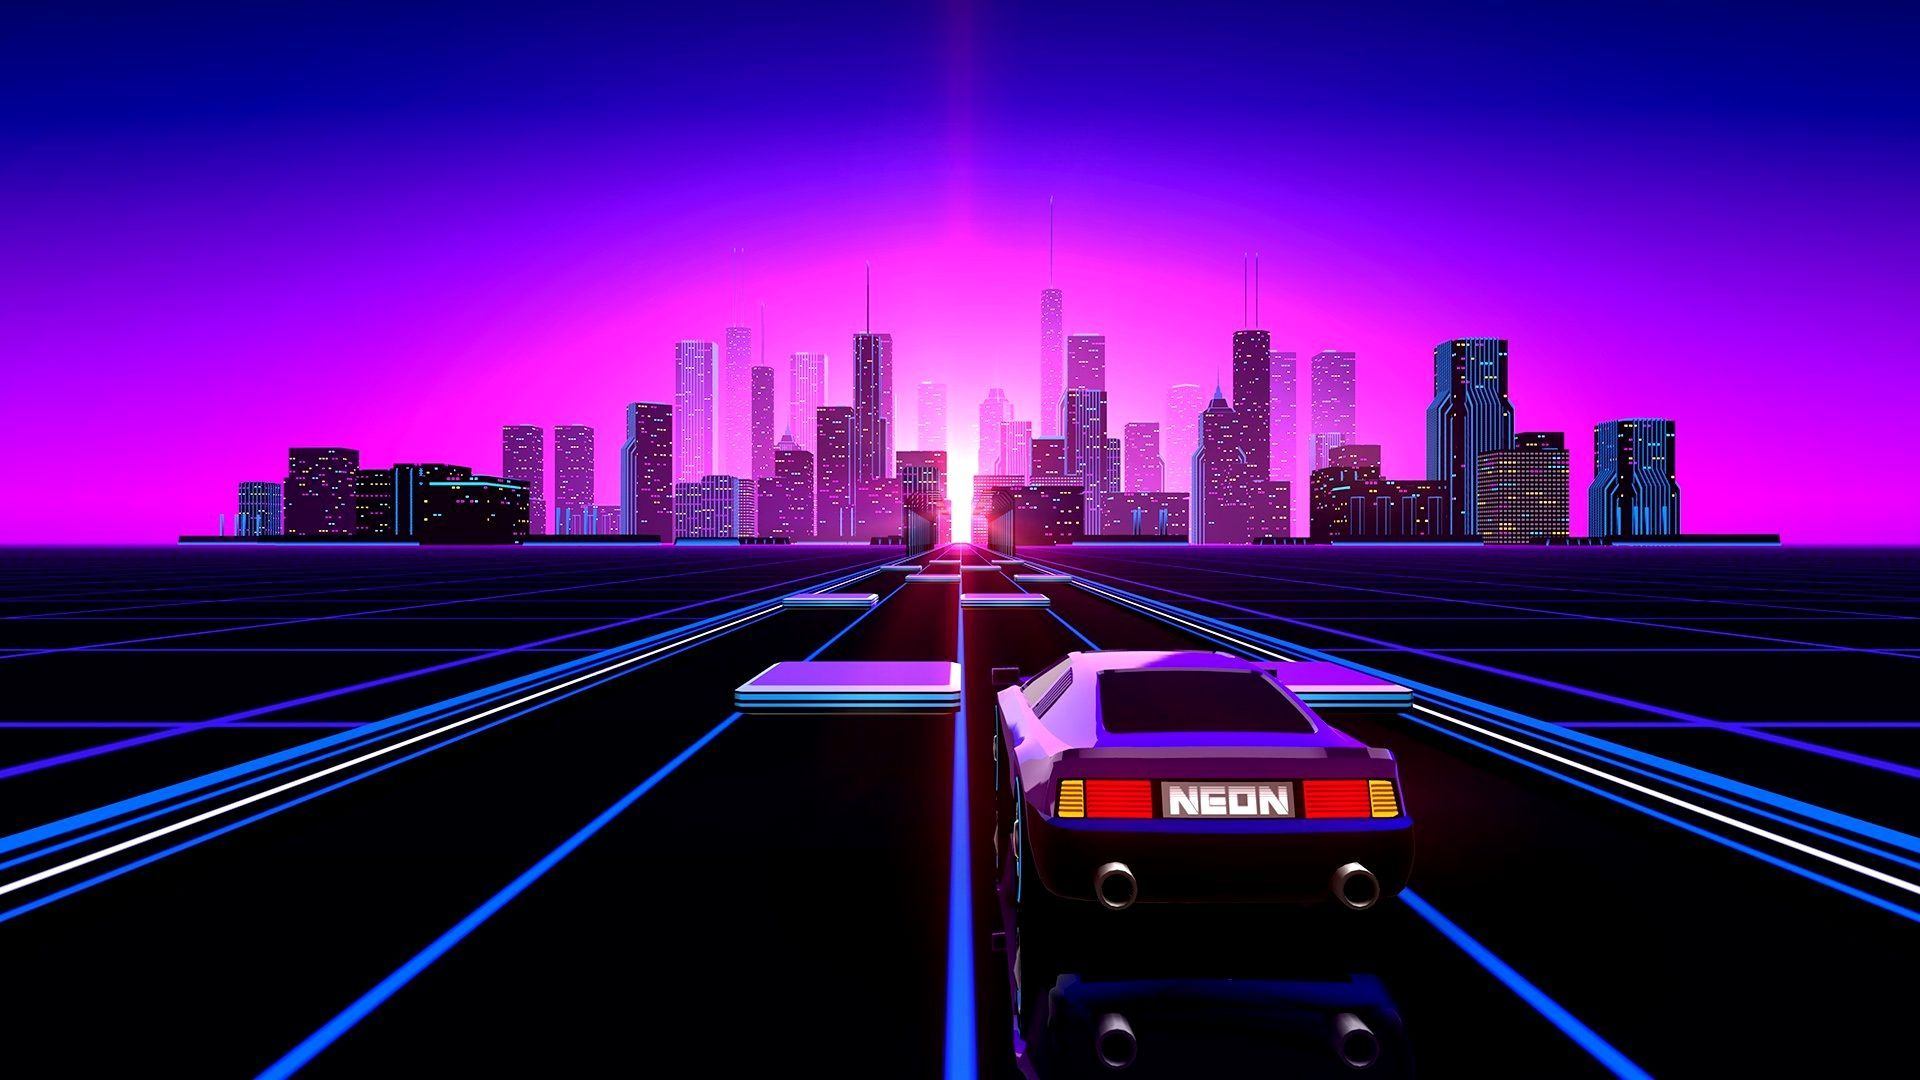 80s Neon Neon Wallpaper 4k Pc Gallery Neon Wallpaper Background Images Wallpapers Background Images